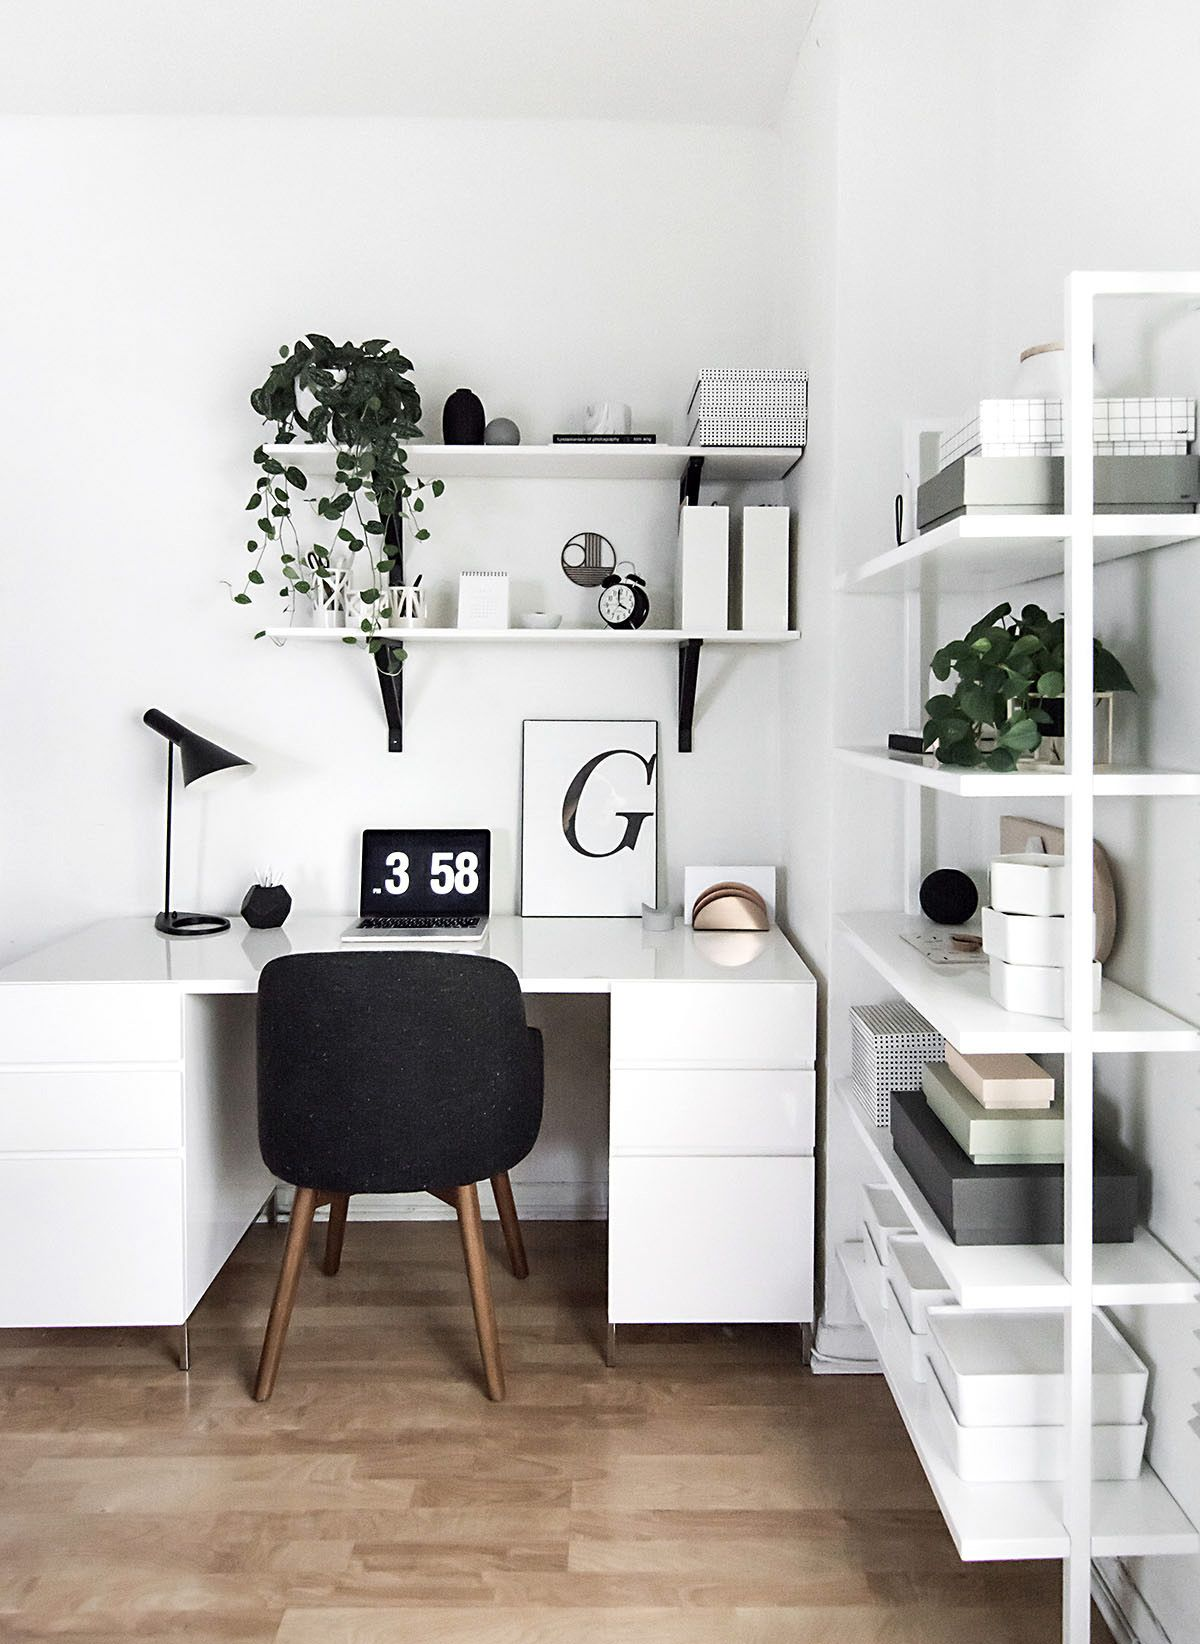 Neat Tidy And Organized This Home Office Is Ready To Tackle The Year Ahead Home Office Decor Minimalism Interior Home